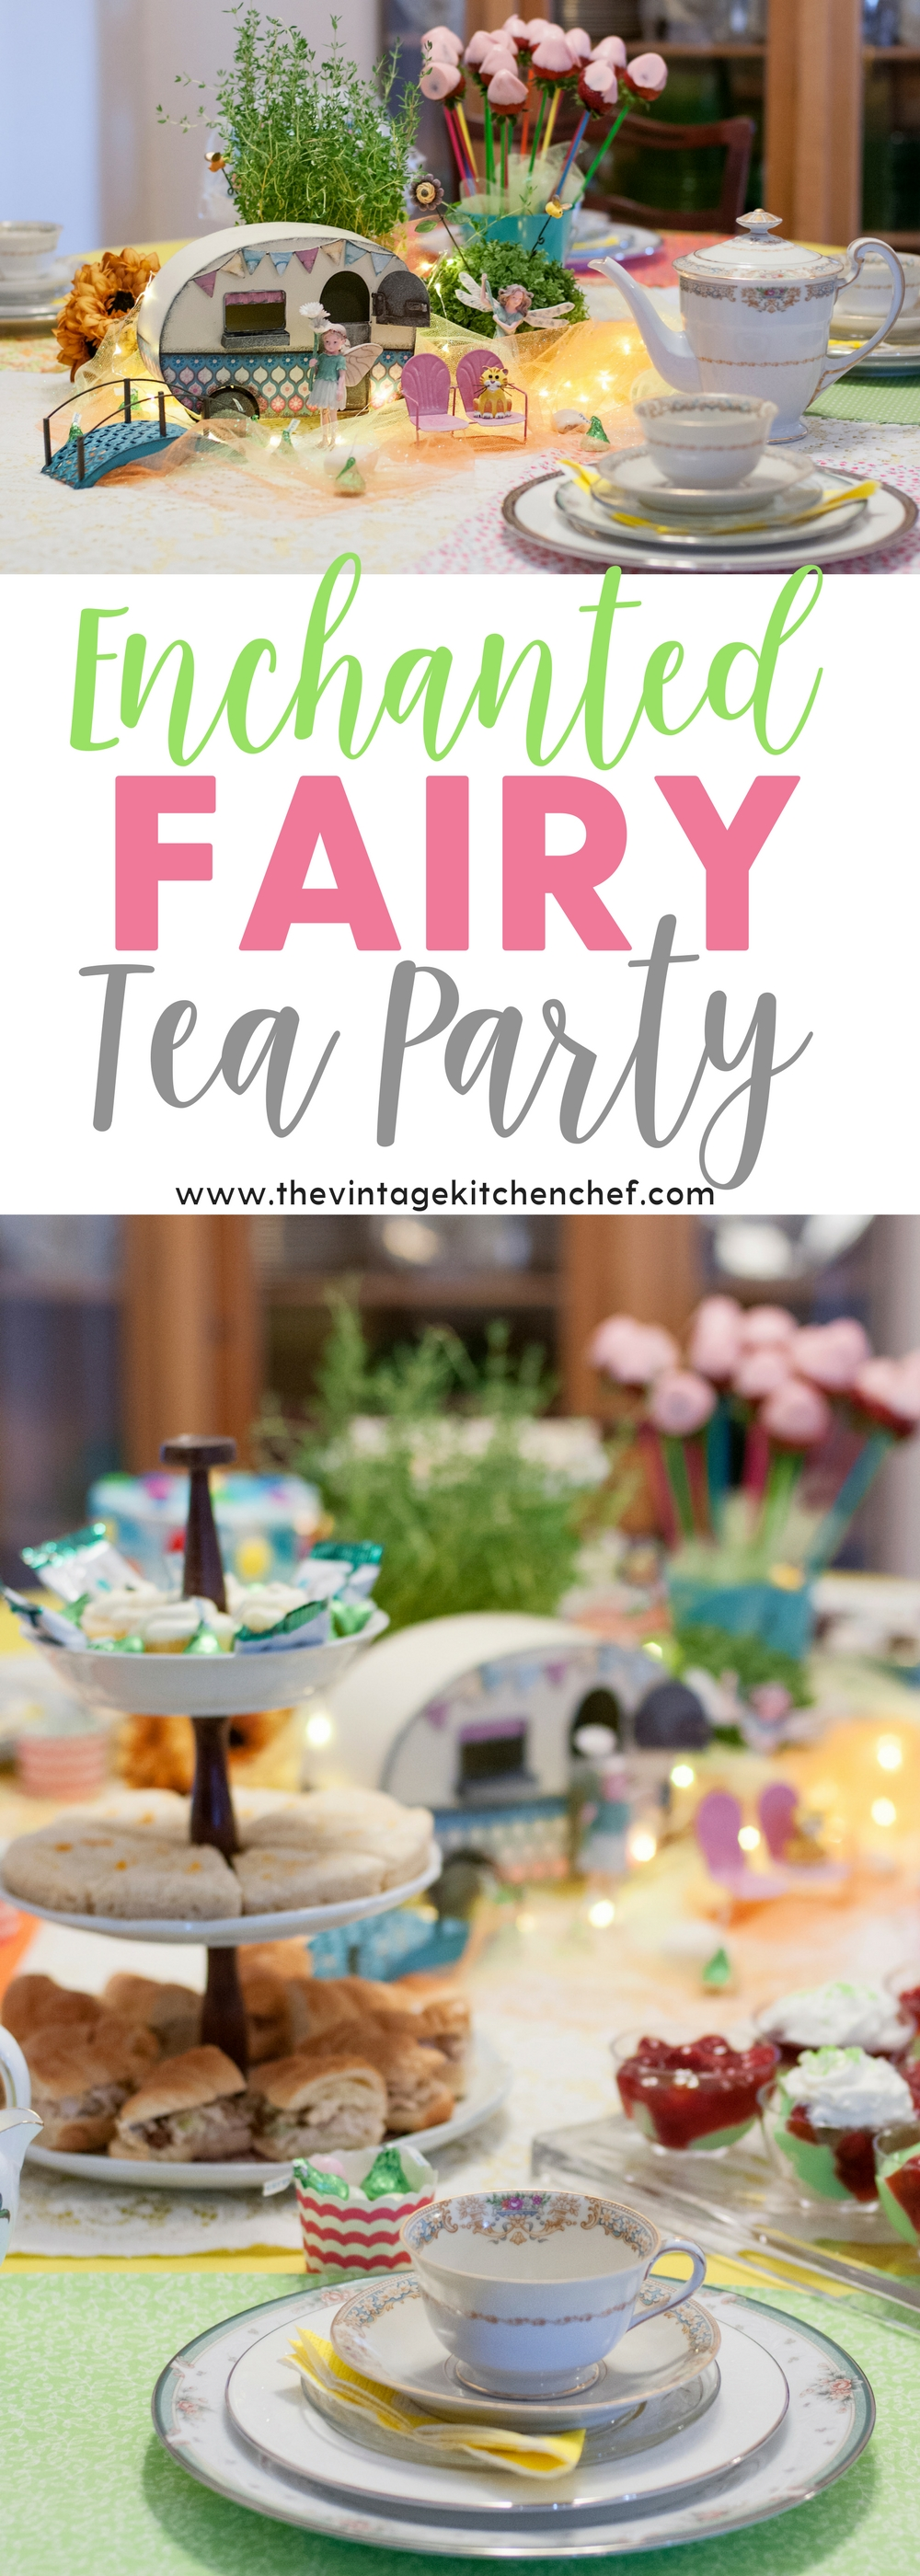 A bit of whimsy and a bit of elegance come together to create this Enchanted Fairy Tea party. What a lovely way to spend an afternoon!